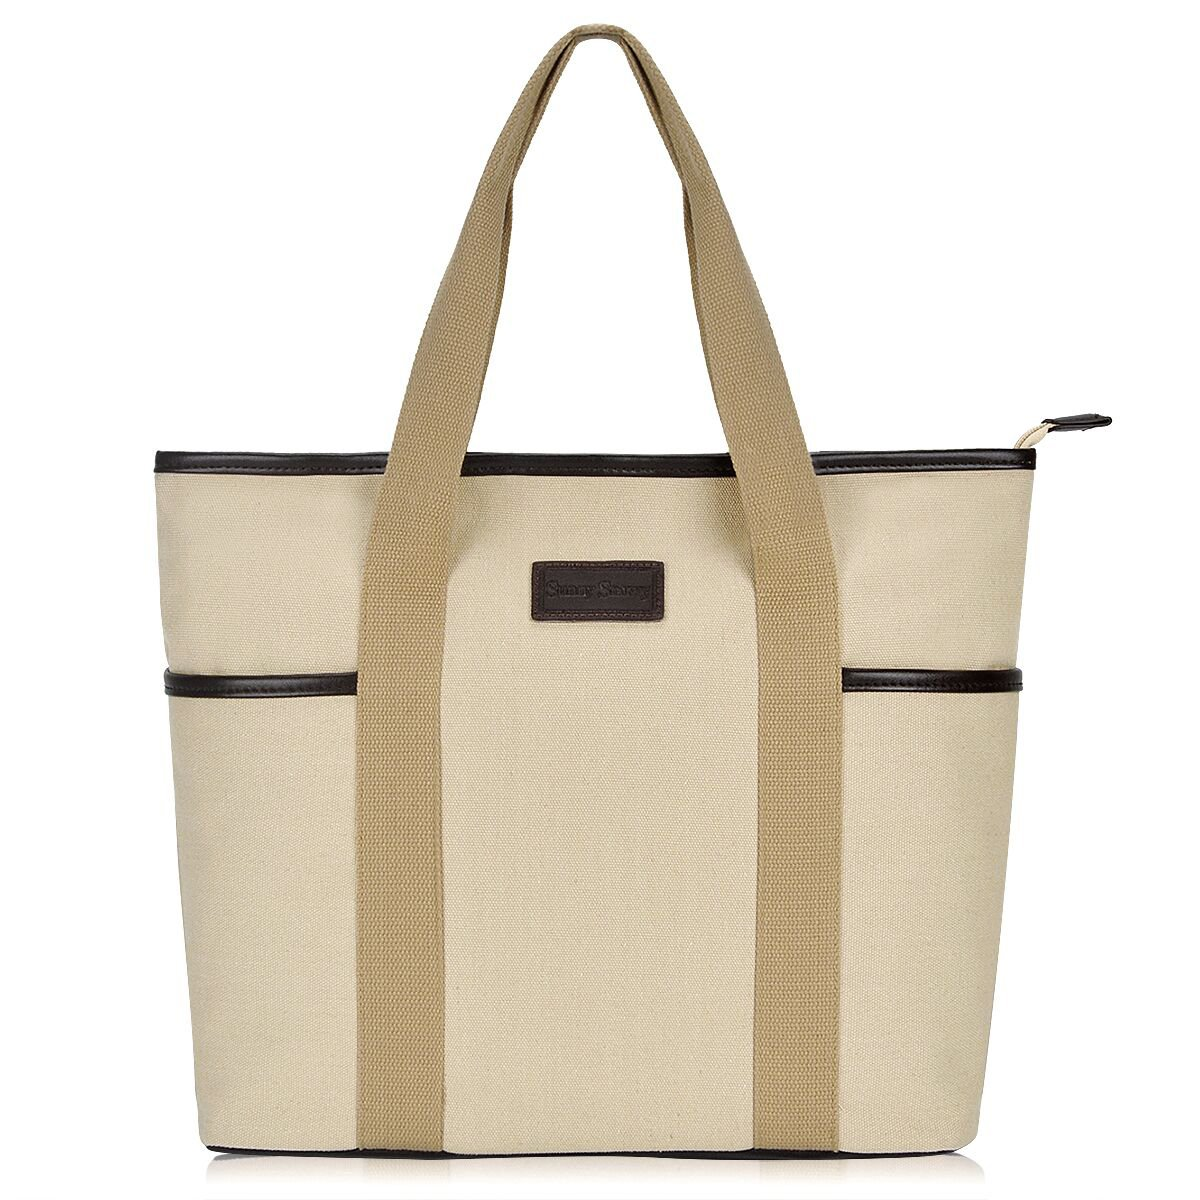 Canvas Tote Bag for Women,Sunny Snowny Large Tote Bags,Work School Shoulder Bag(8002,Beige)